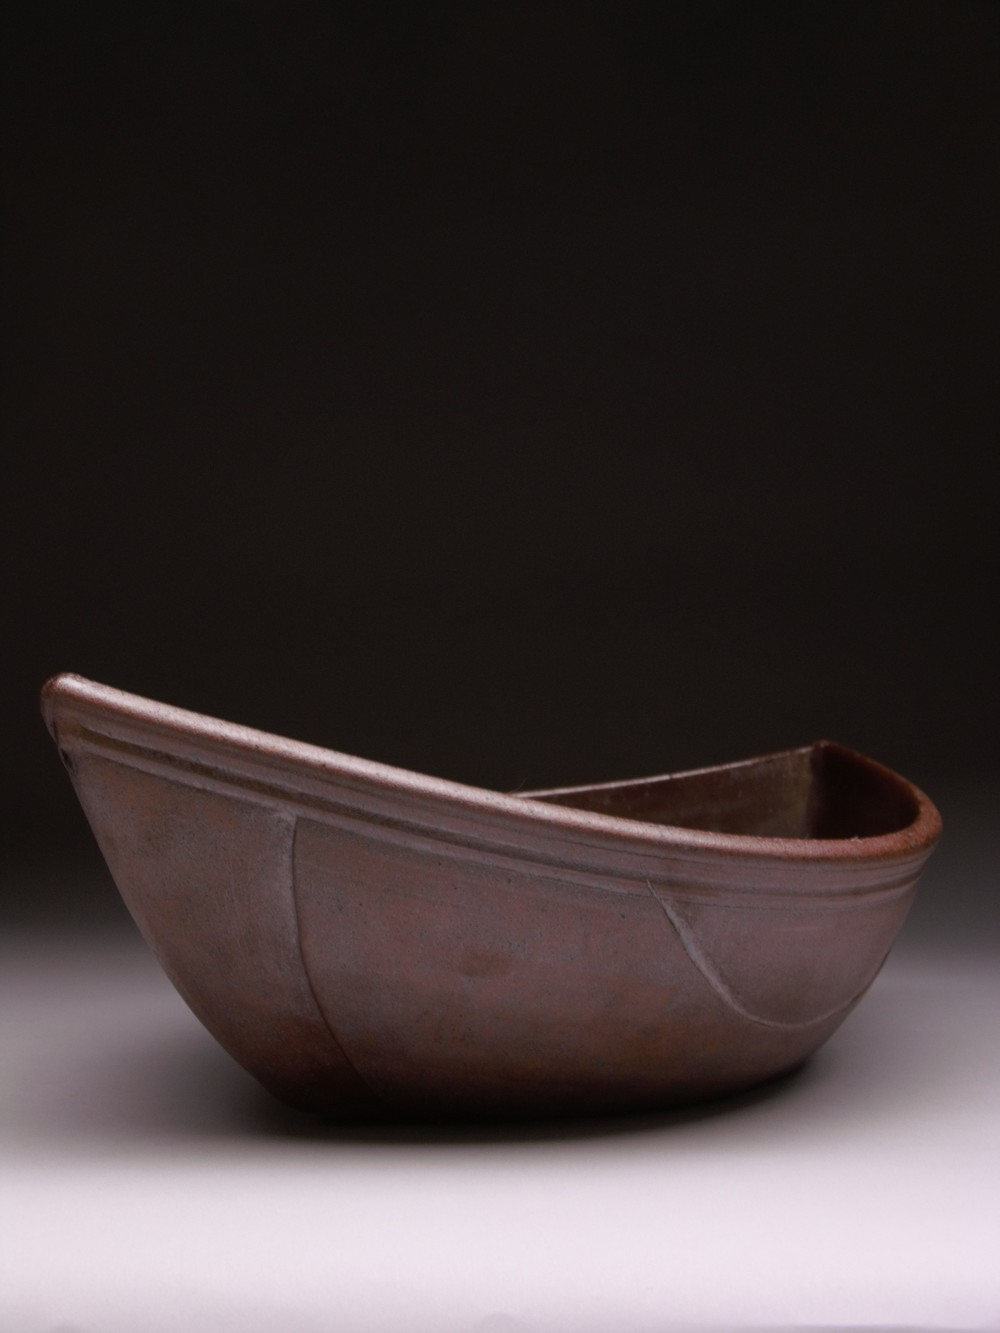 WOODFIRED CERAMIC BOAT 2004